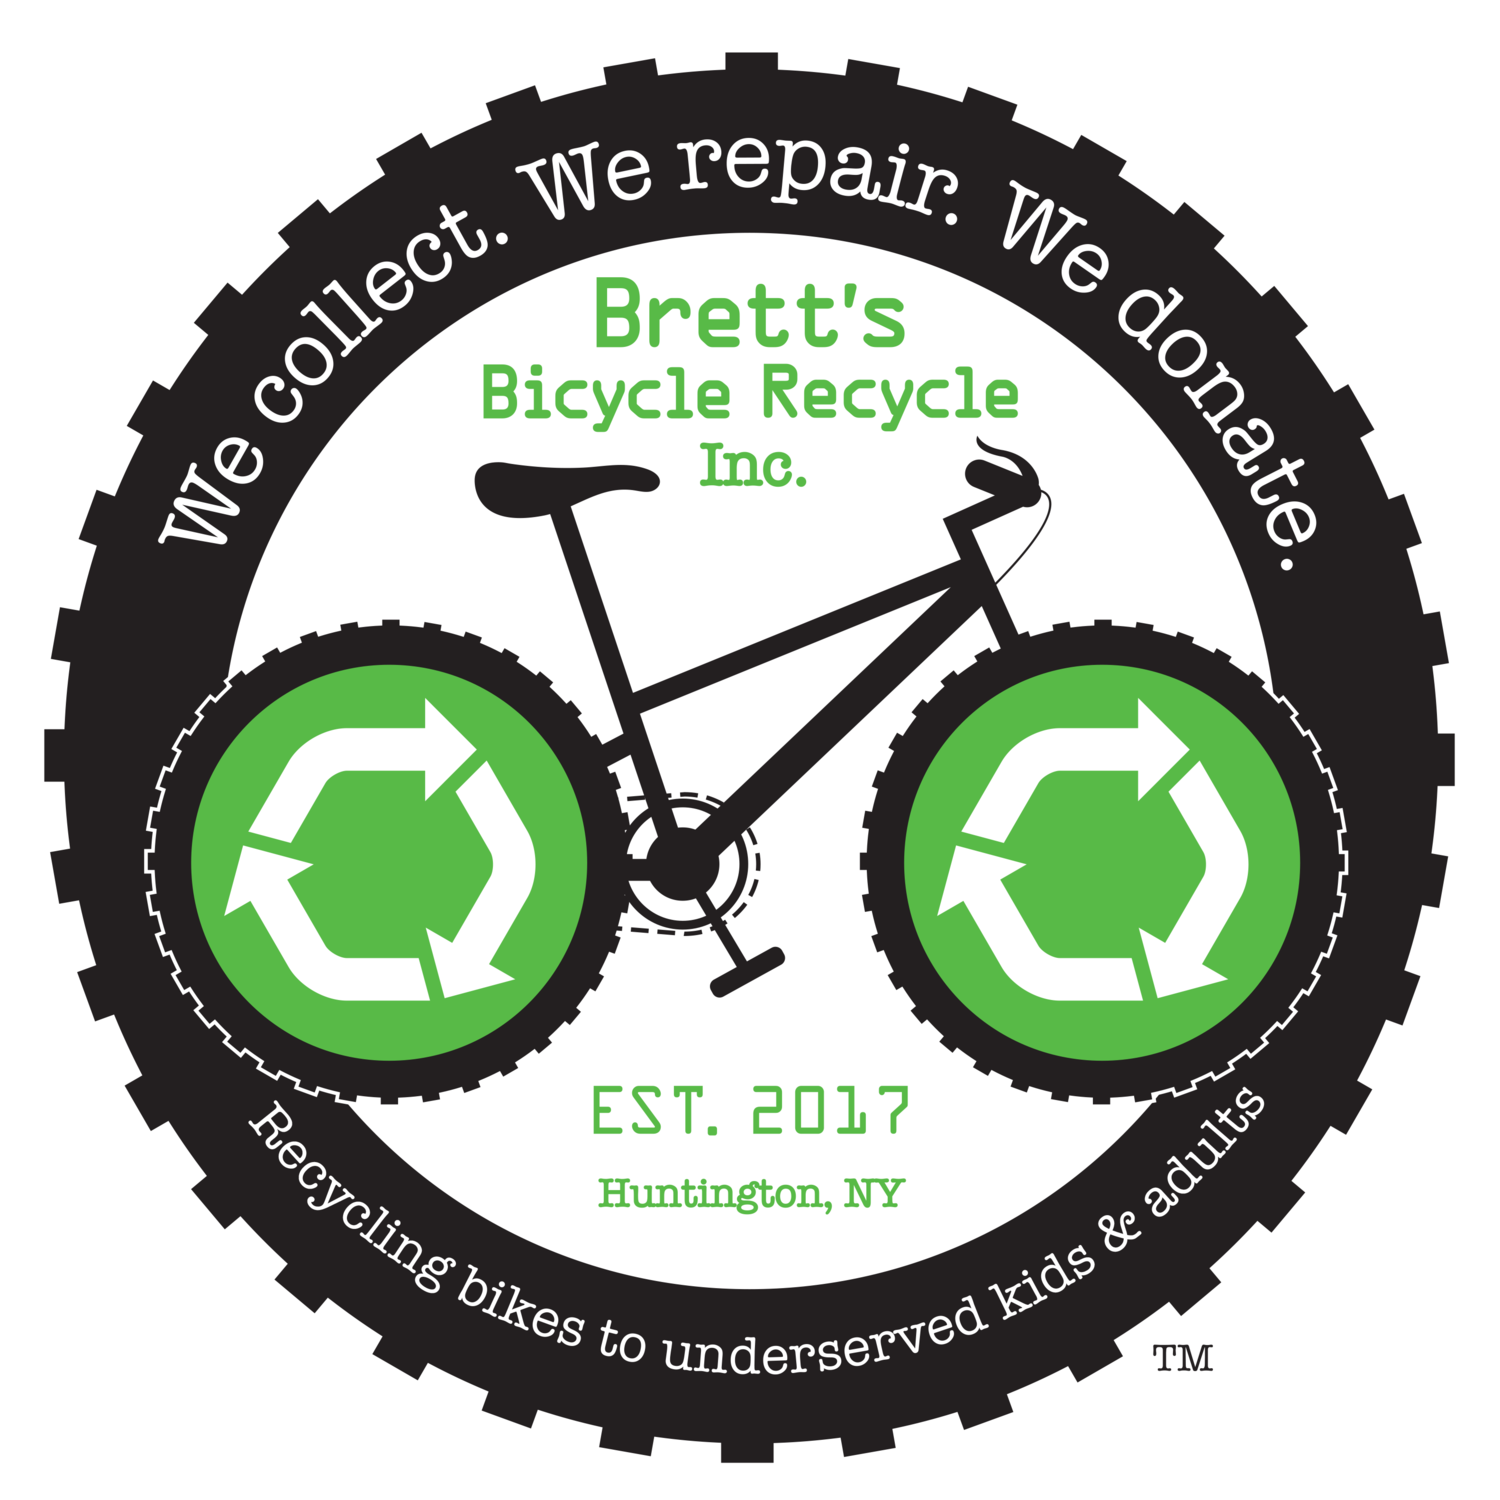 Brett's Bicycle Recycle